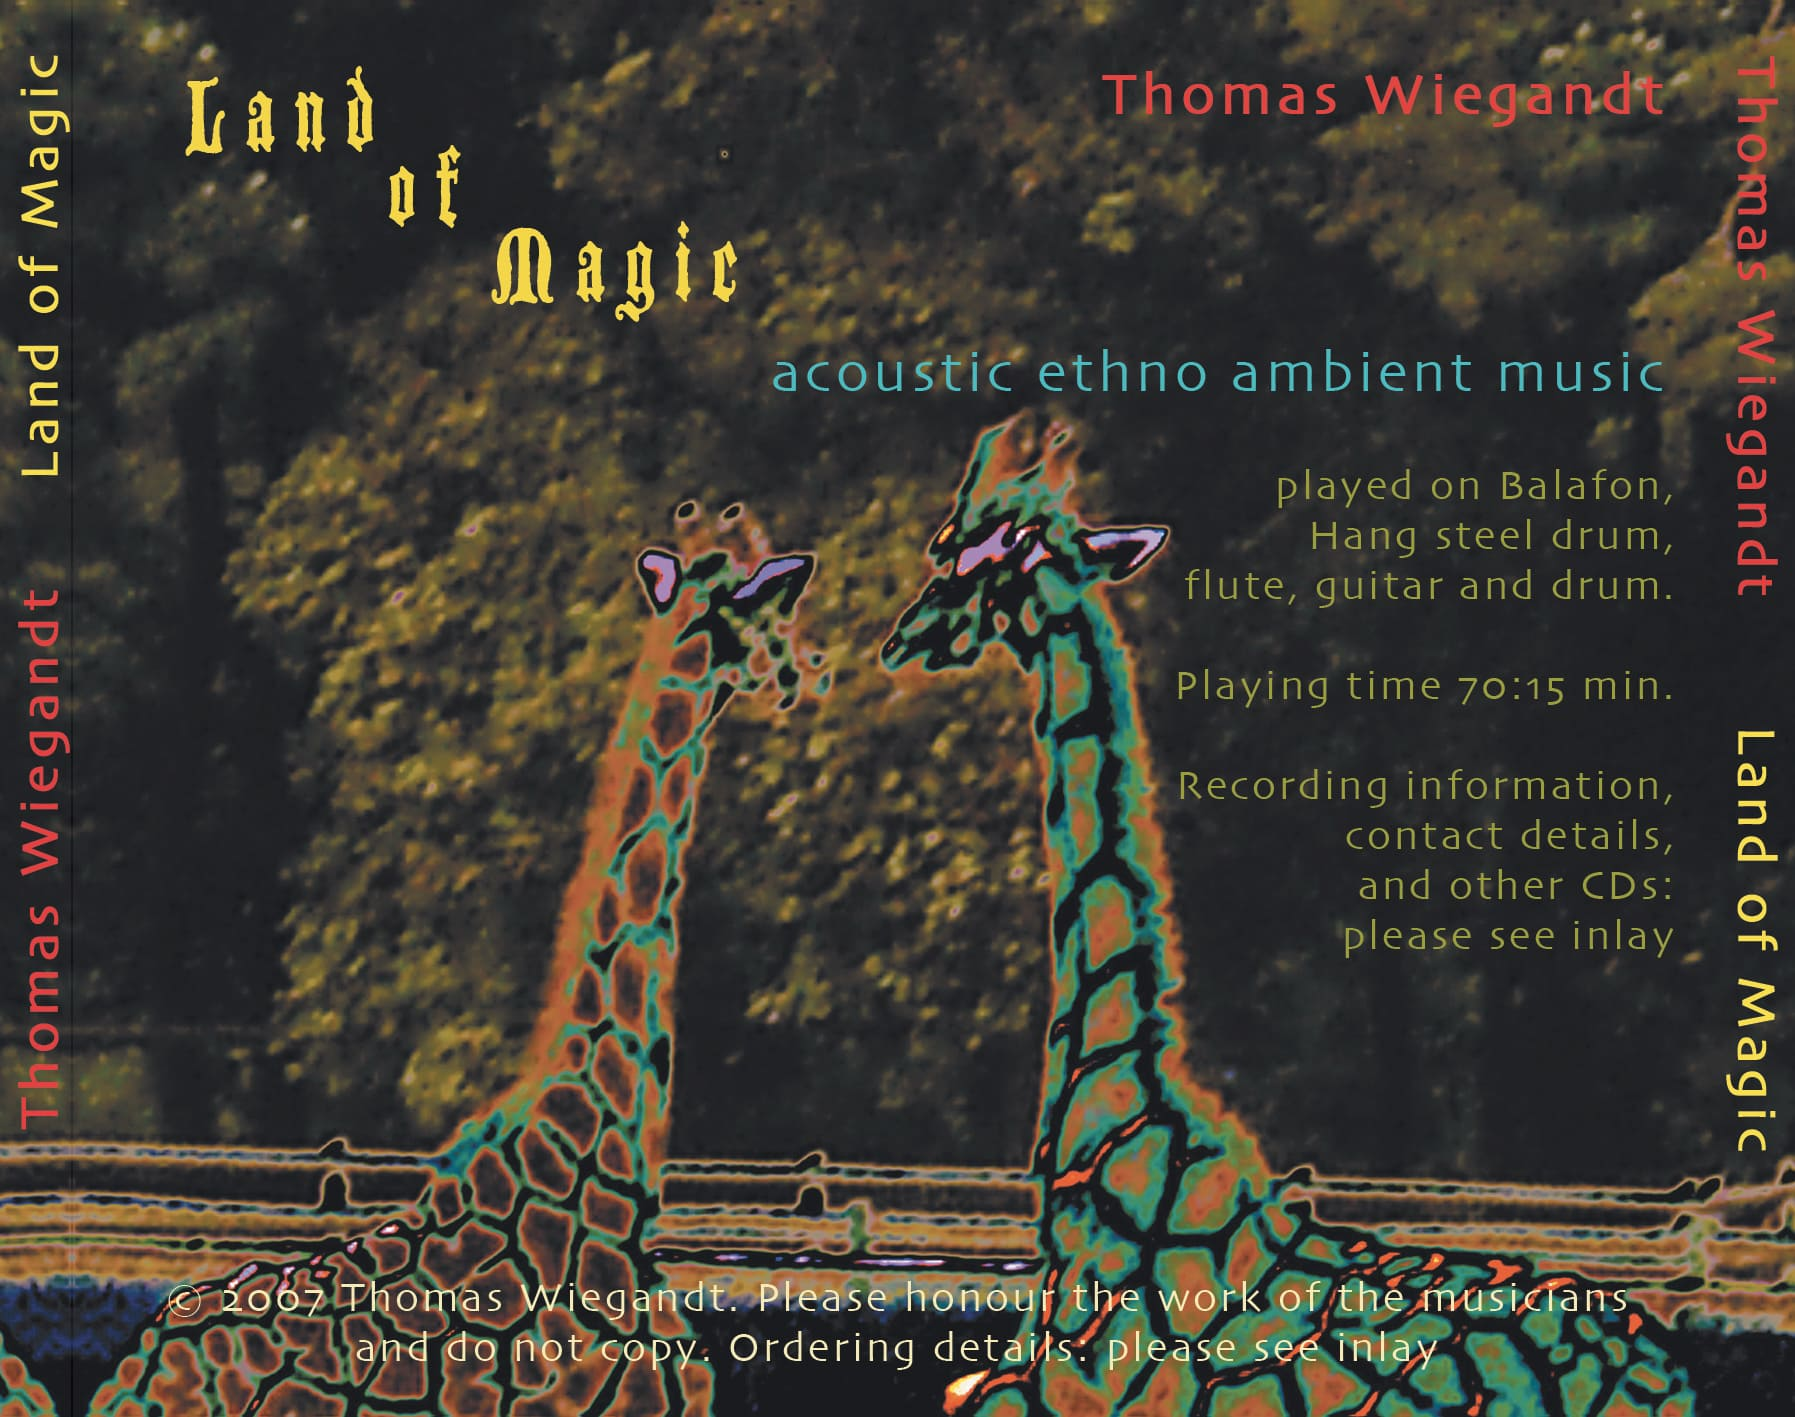 Land Of Magic - CD back cover